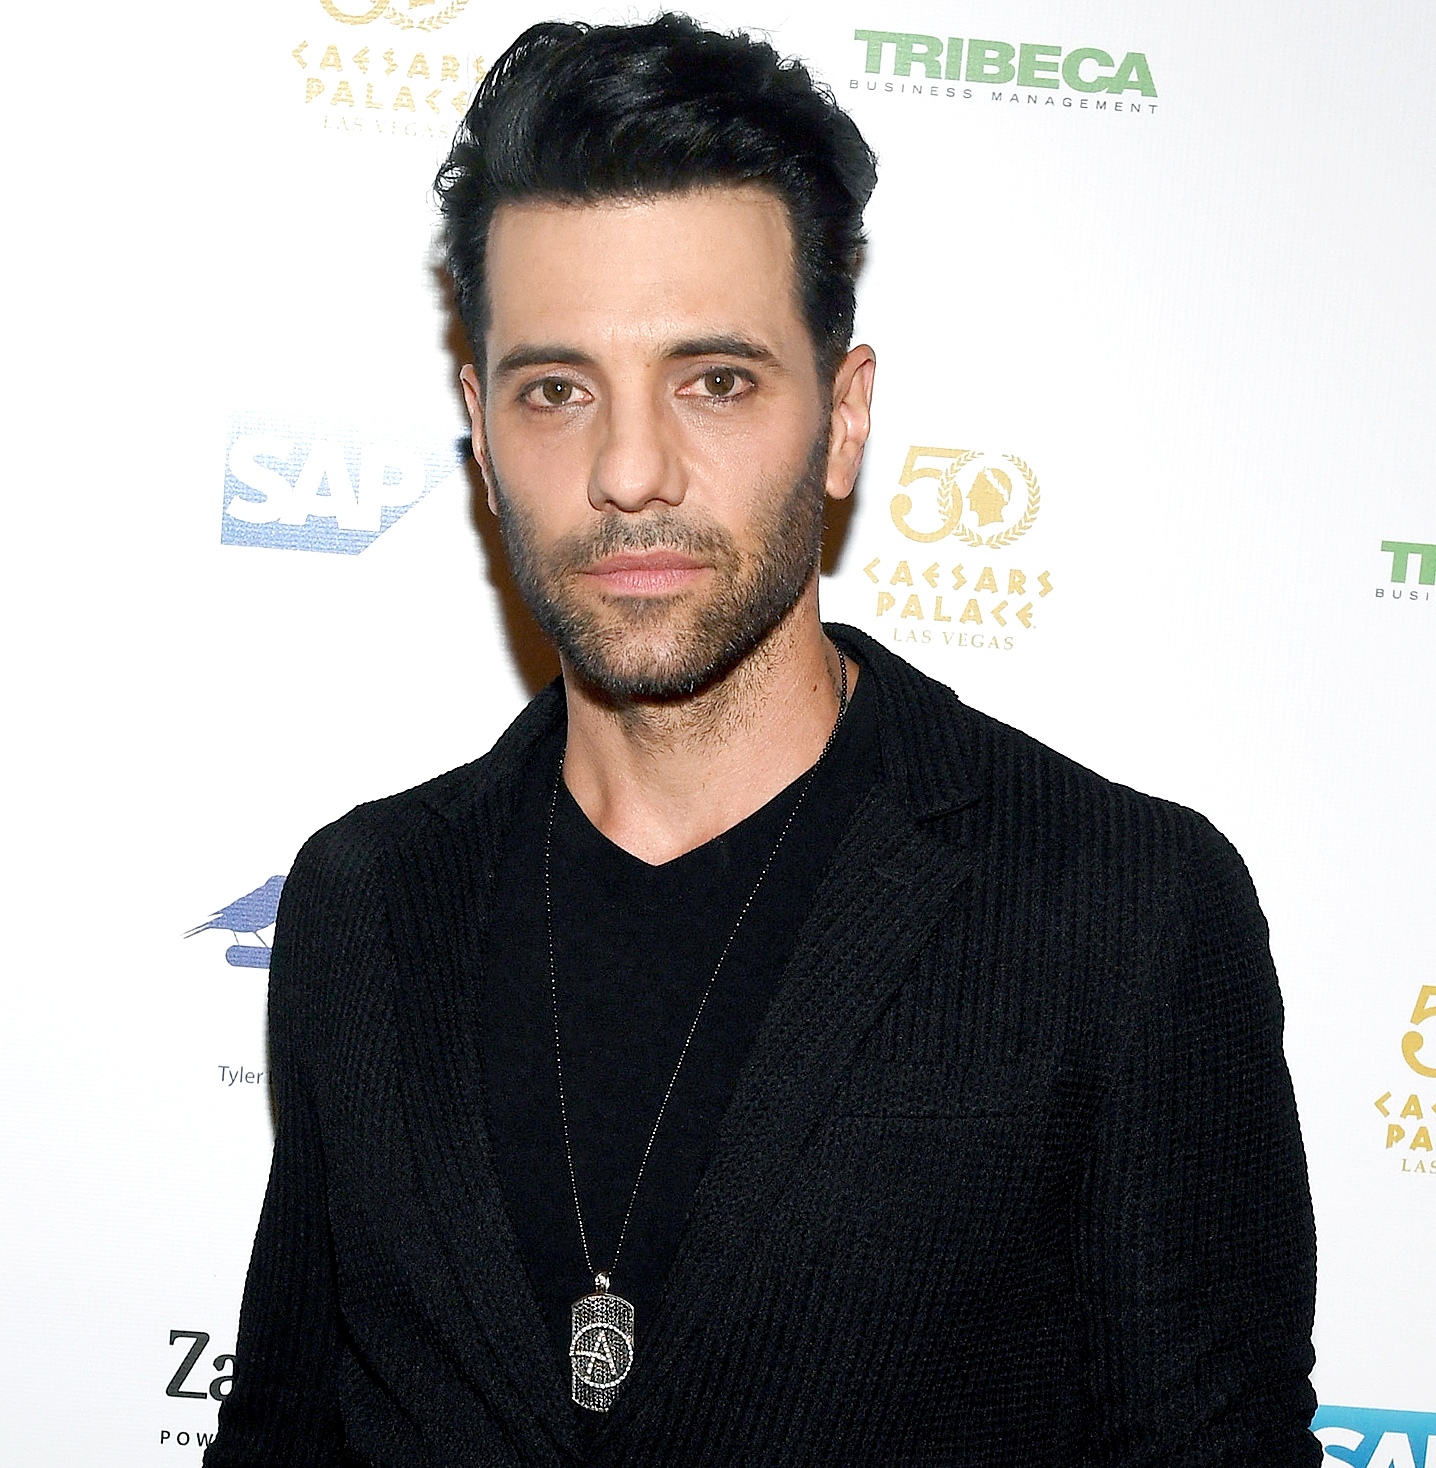 Criss Angel attends the third annual Tyler Robinson Foundation gala benefiting families affected by pediatric cancer at Caesars Palace on September 30, 2016 in Las Vegas, Nevada.